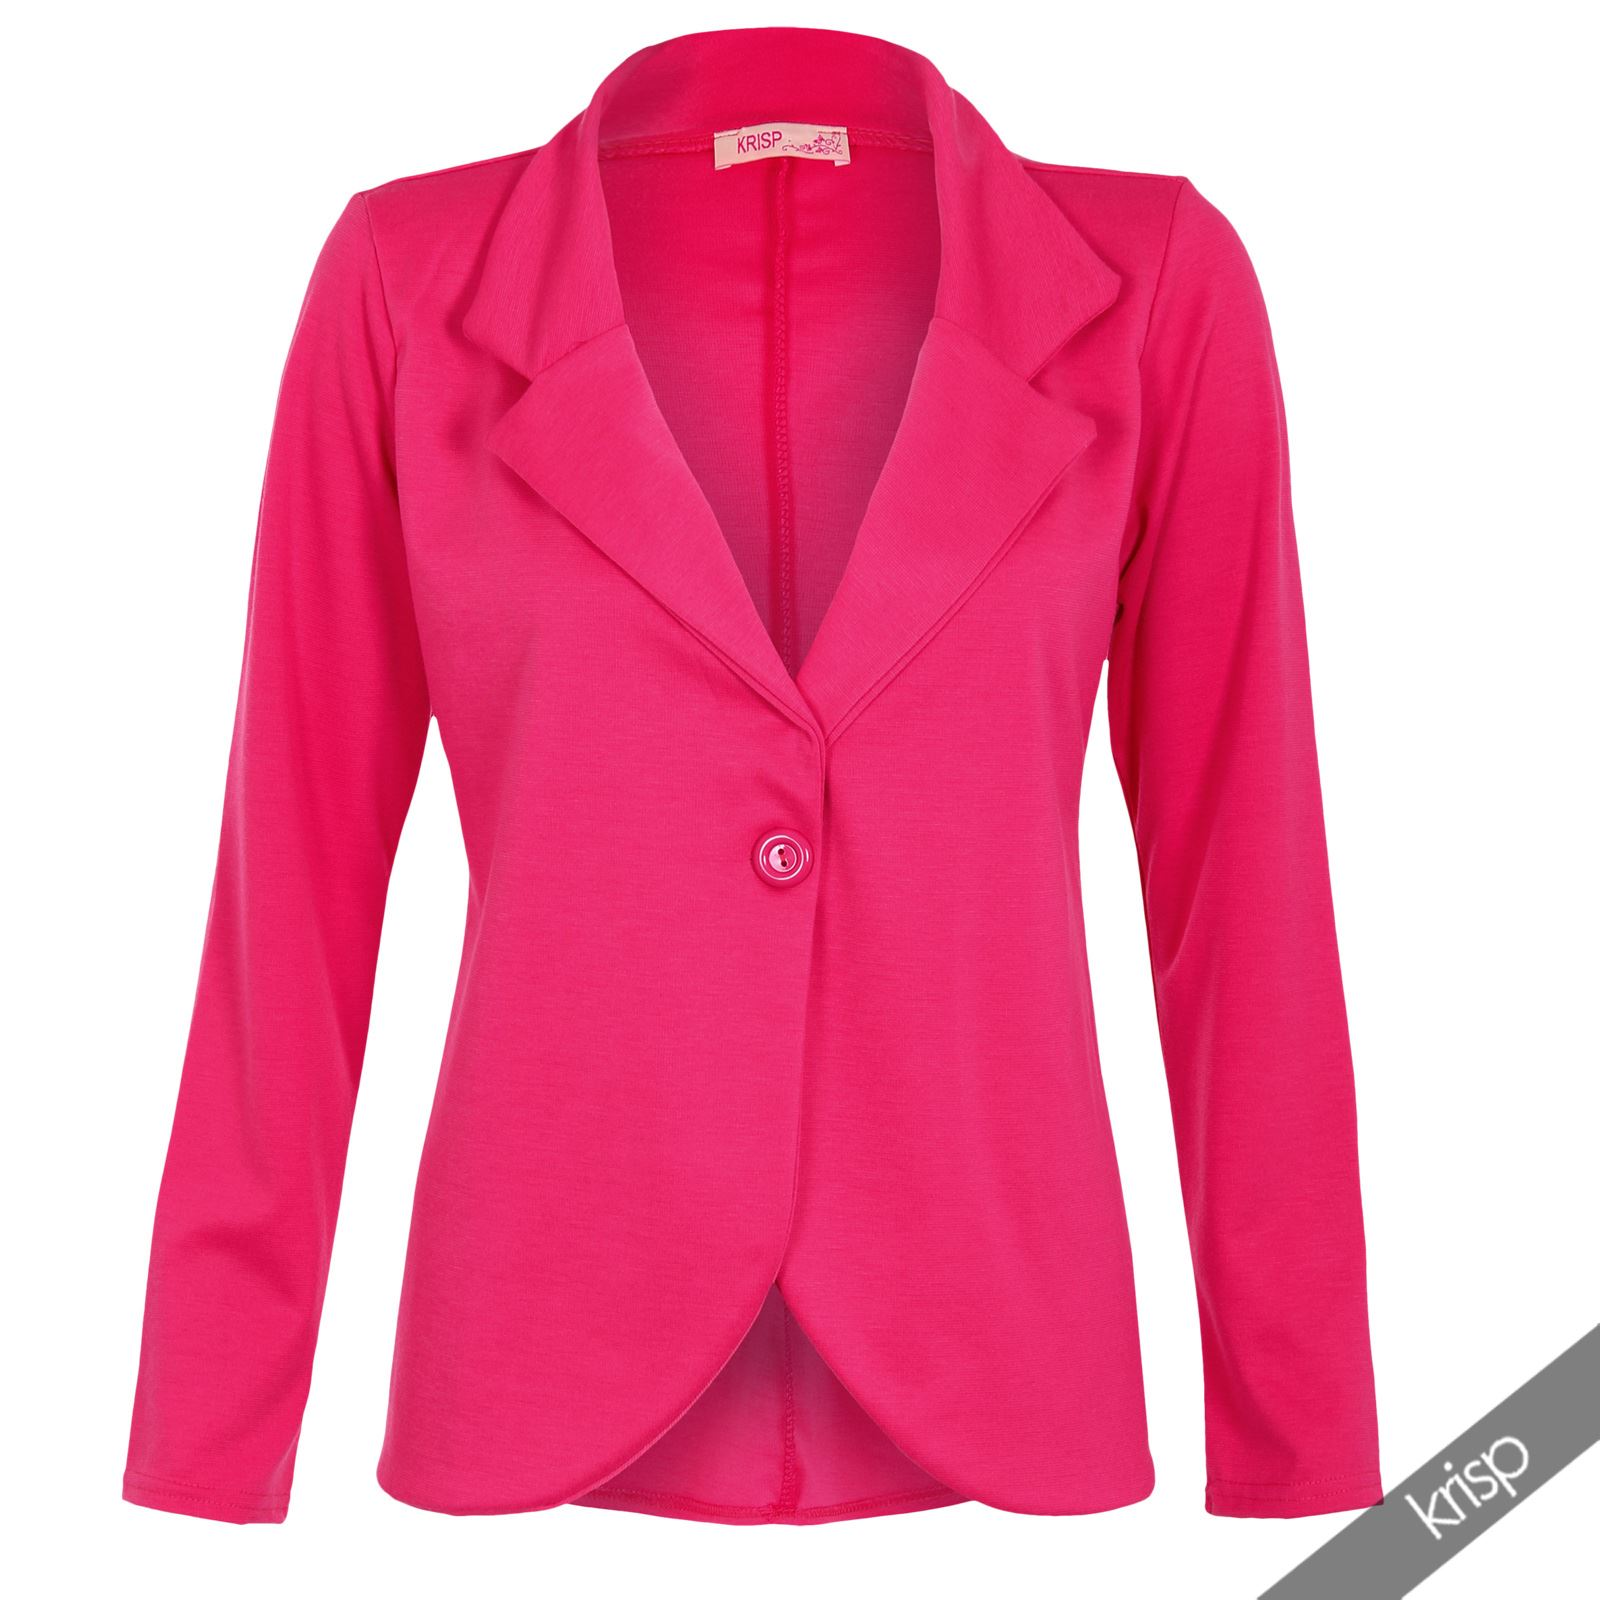 Womens-Jacket-Shrug-Casual-Blazer-Jersey-Smart-Suit-Ladies-Office-Evening-Coat thumbnail 15